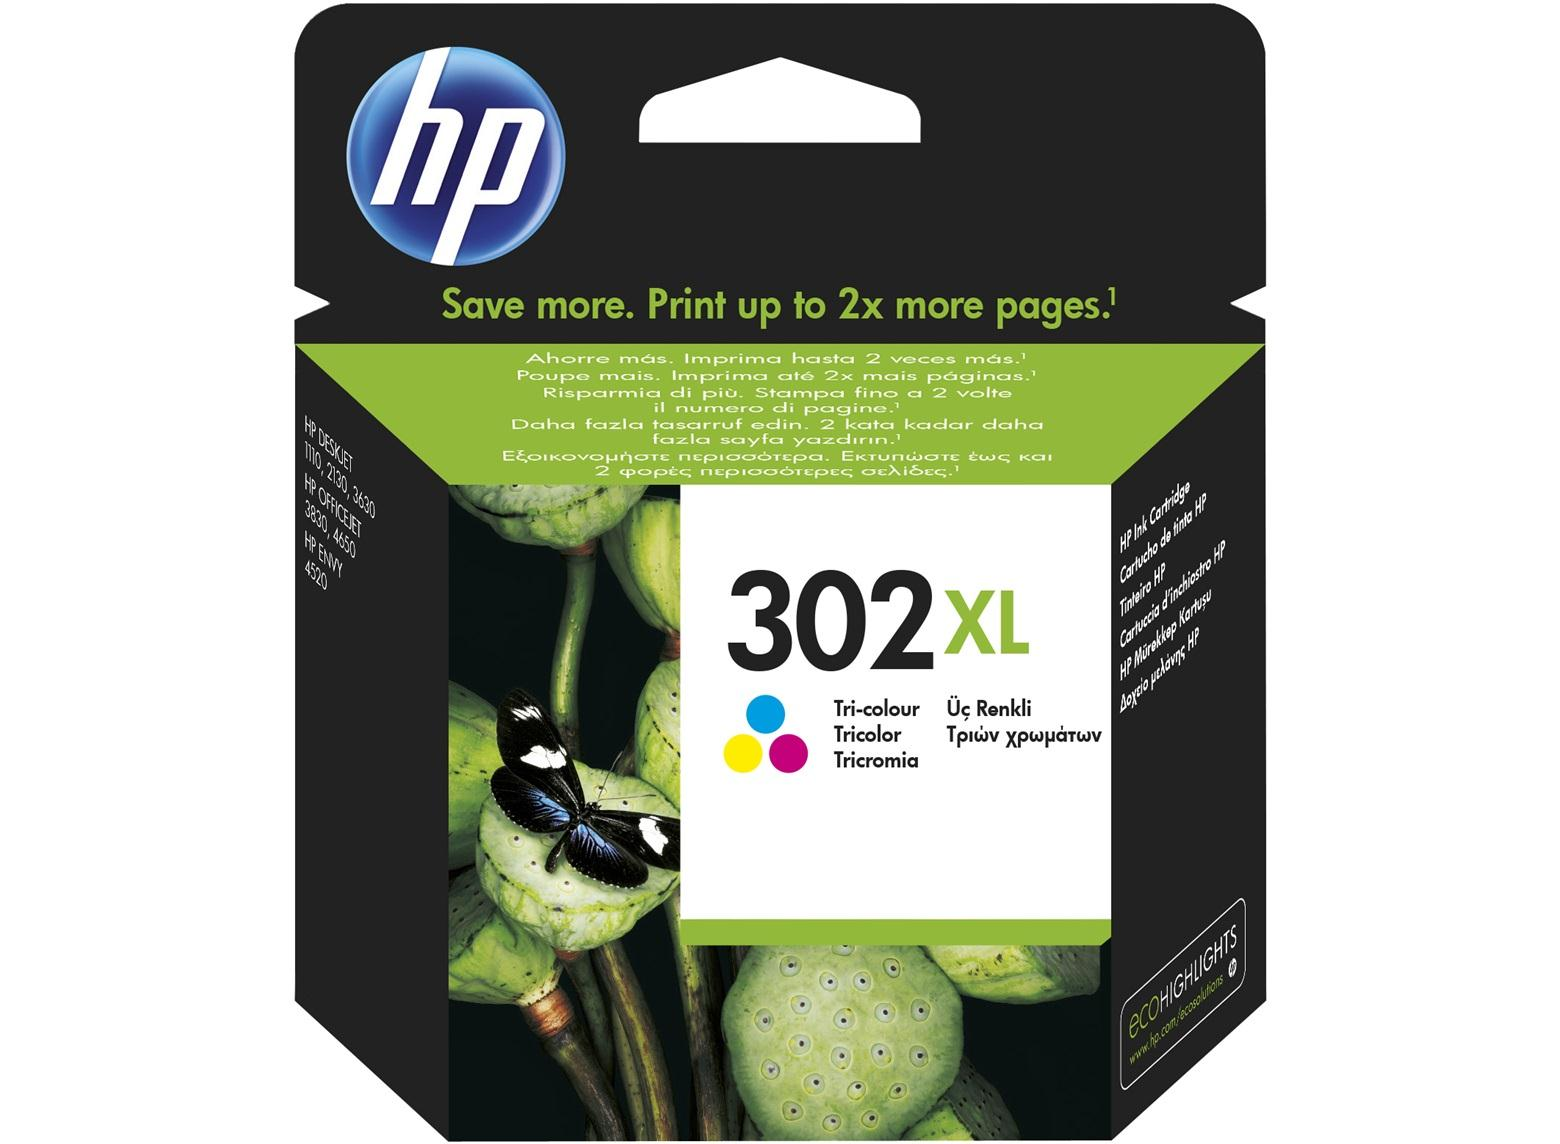 Εγχρωμο Μελάνι HP No302XL Color F6U67AE Deskjet 2130 330p